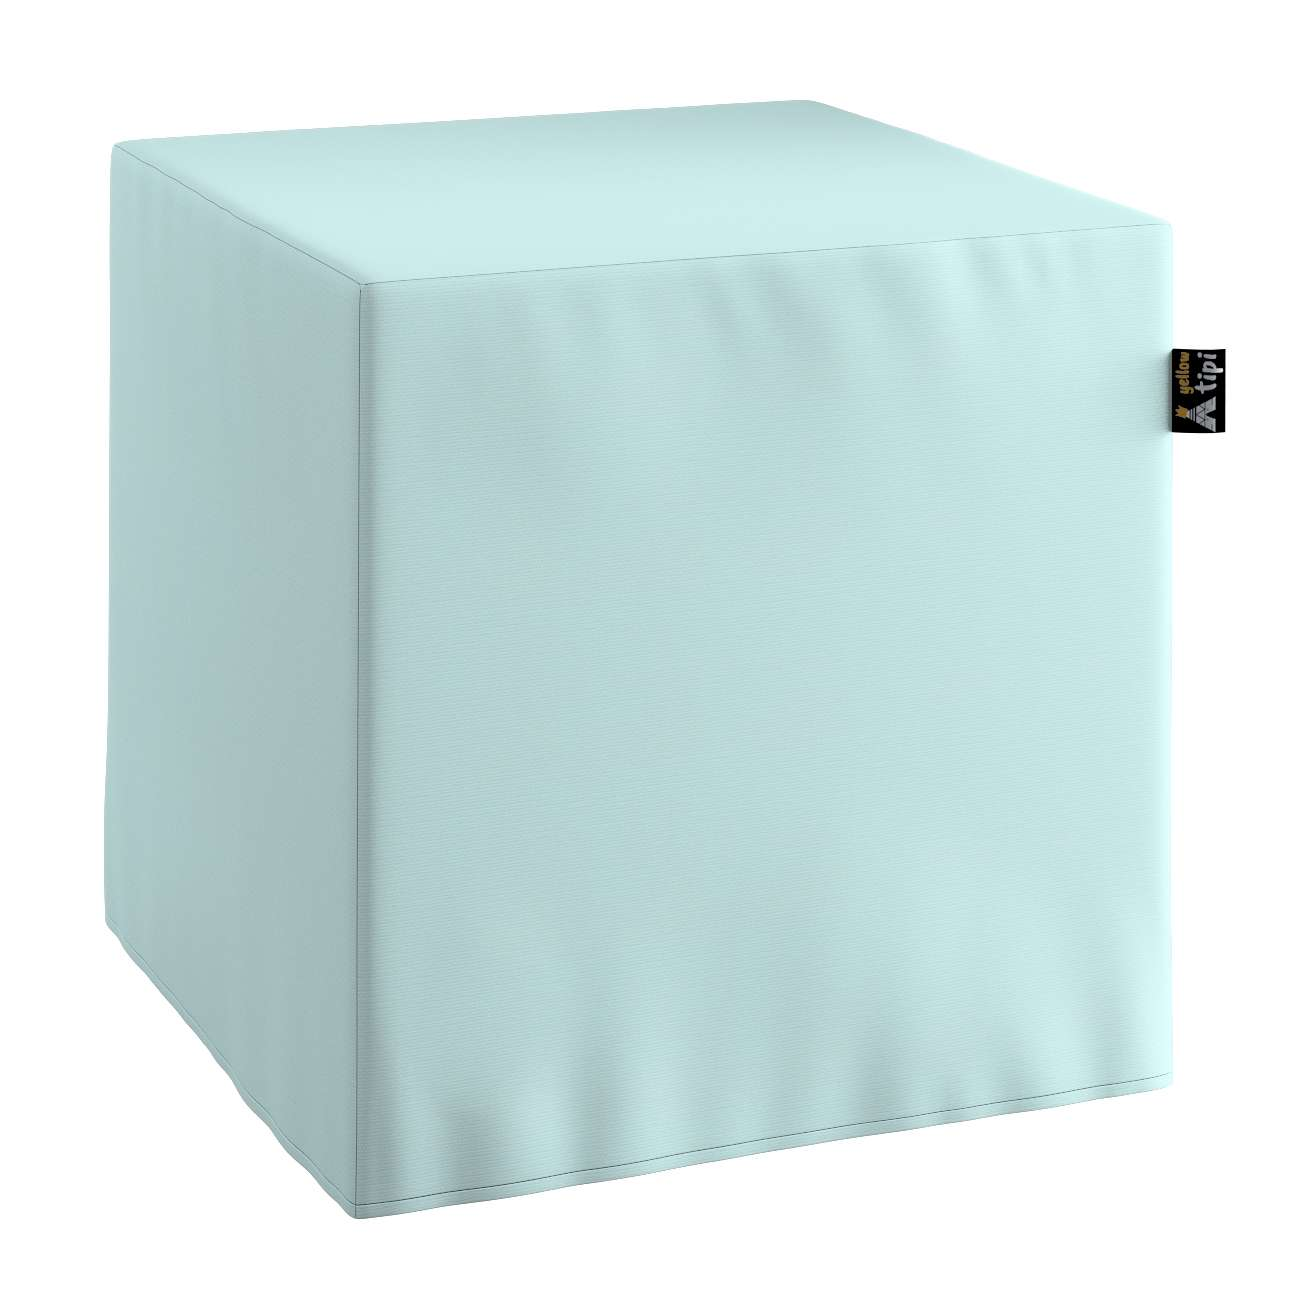 Nano cube pouf in collection Cotton Story, fabric: 702-10